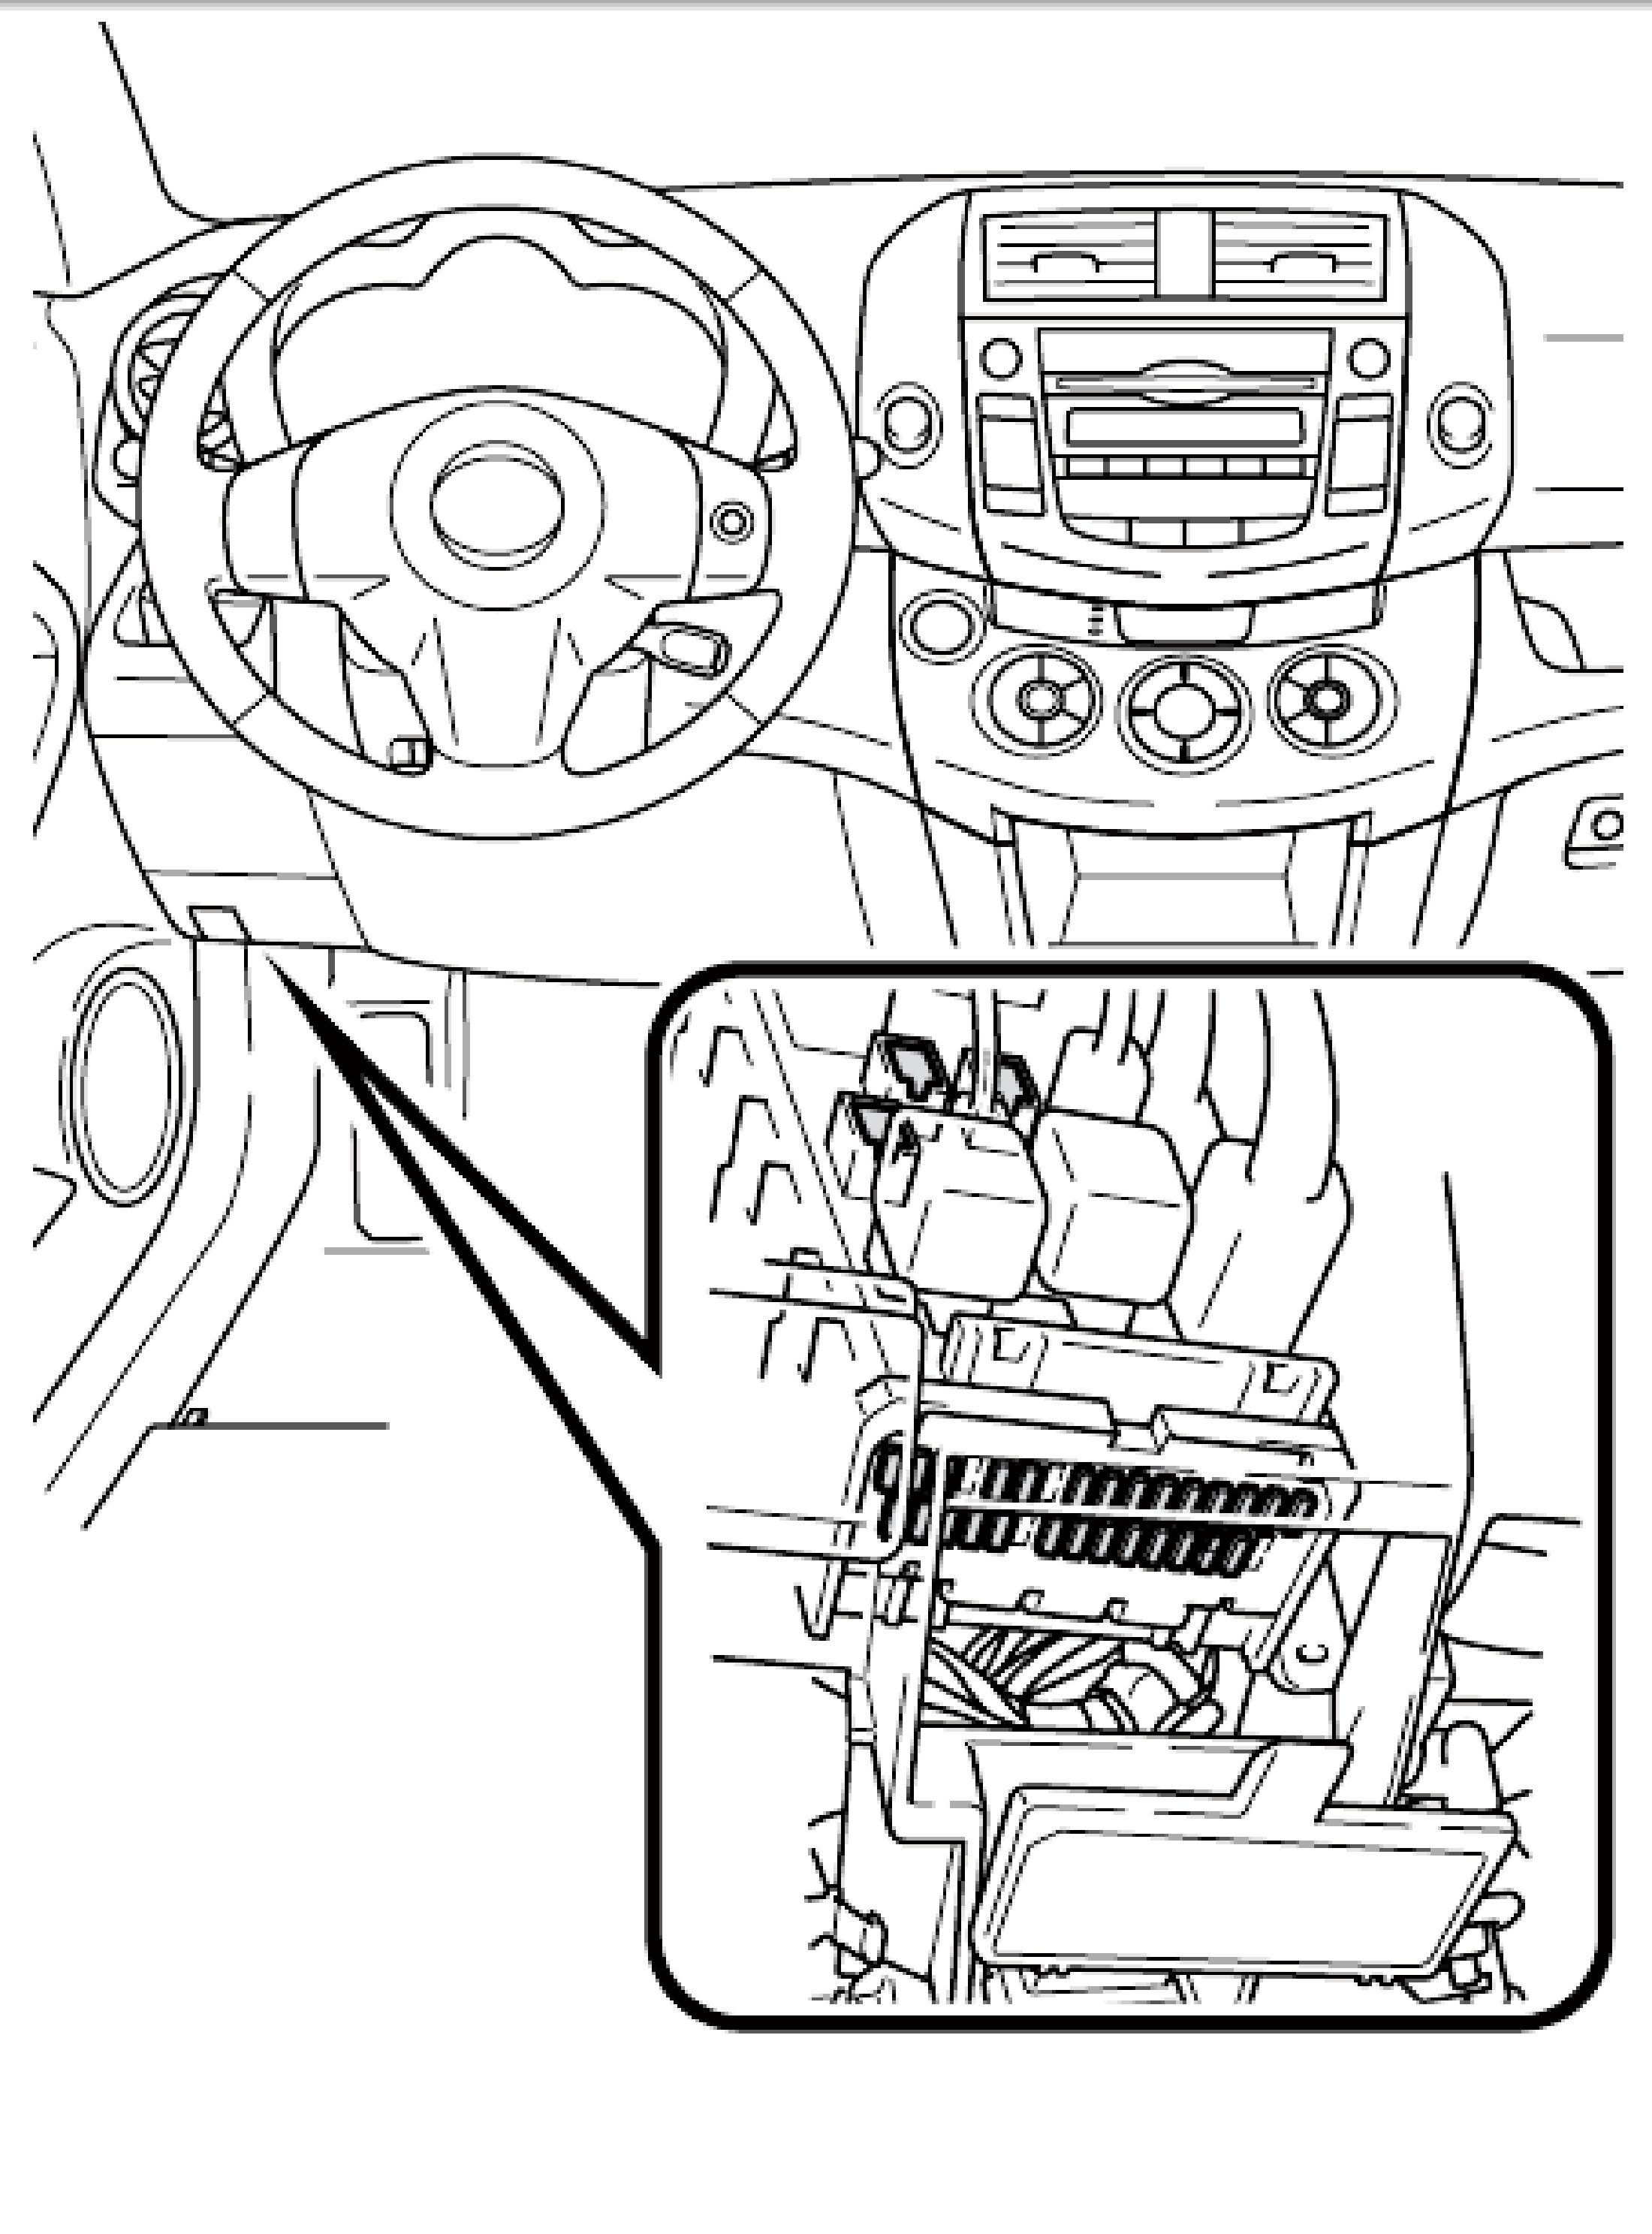 toyota rav4 fuse box location GCKEDBA rav4 fuse box location 1998 wiring diagrams instruction Mack CH 600 Moose Bumper at crackthecode.co